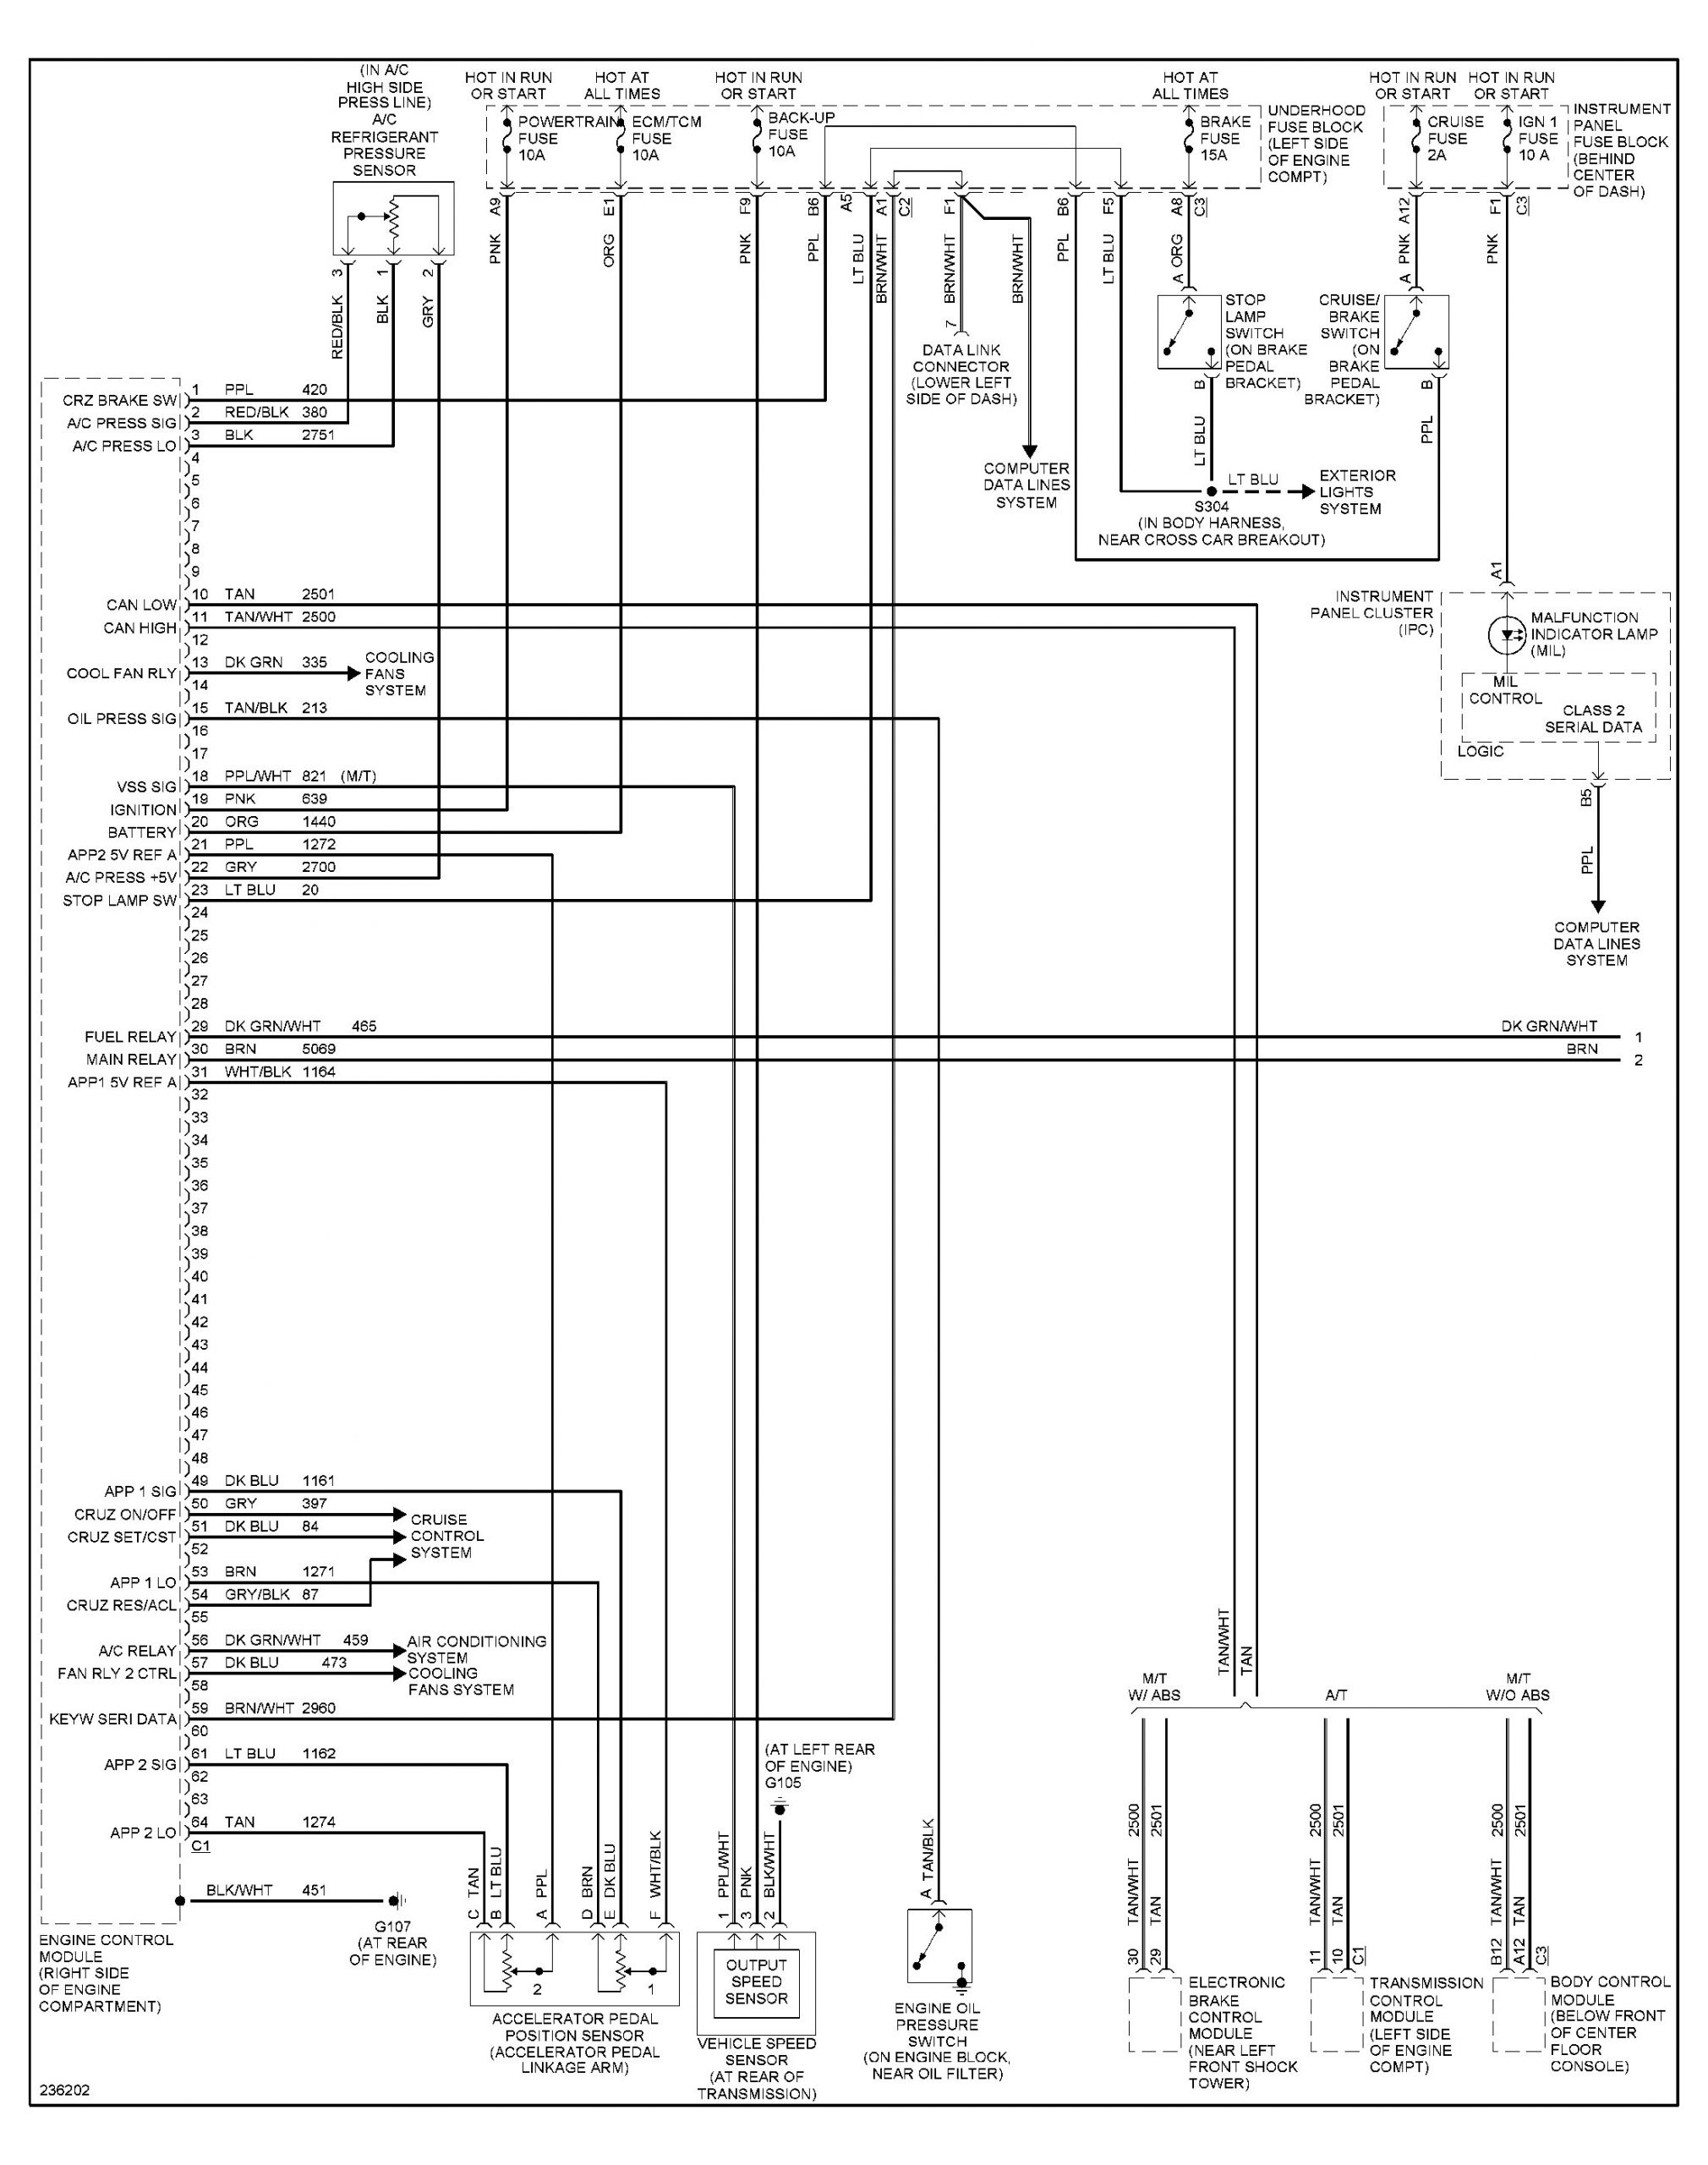 Saturn Spitronics Diagram Spitronics Wiring Diagram Pdf Diagram Of Saturn Spitronics Diagram